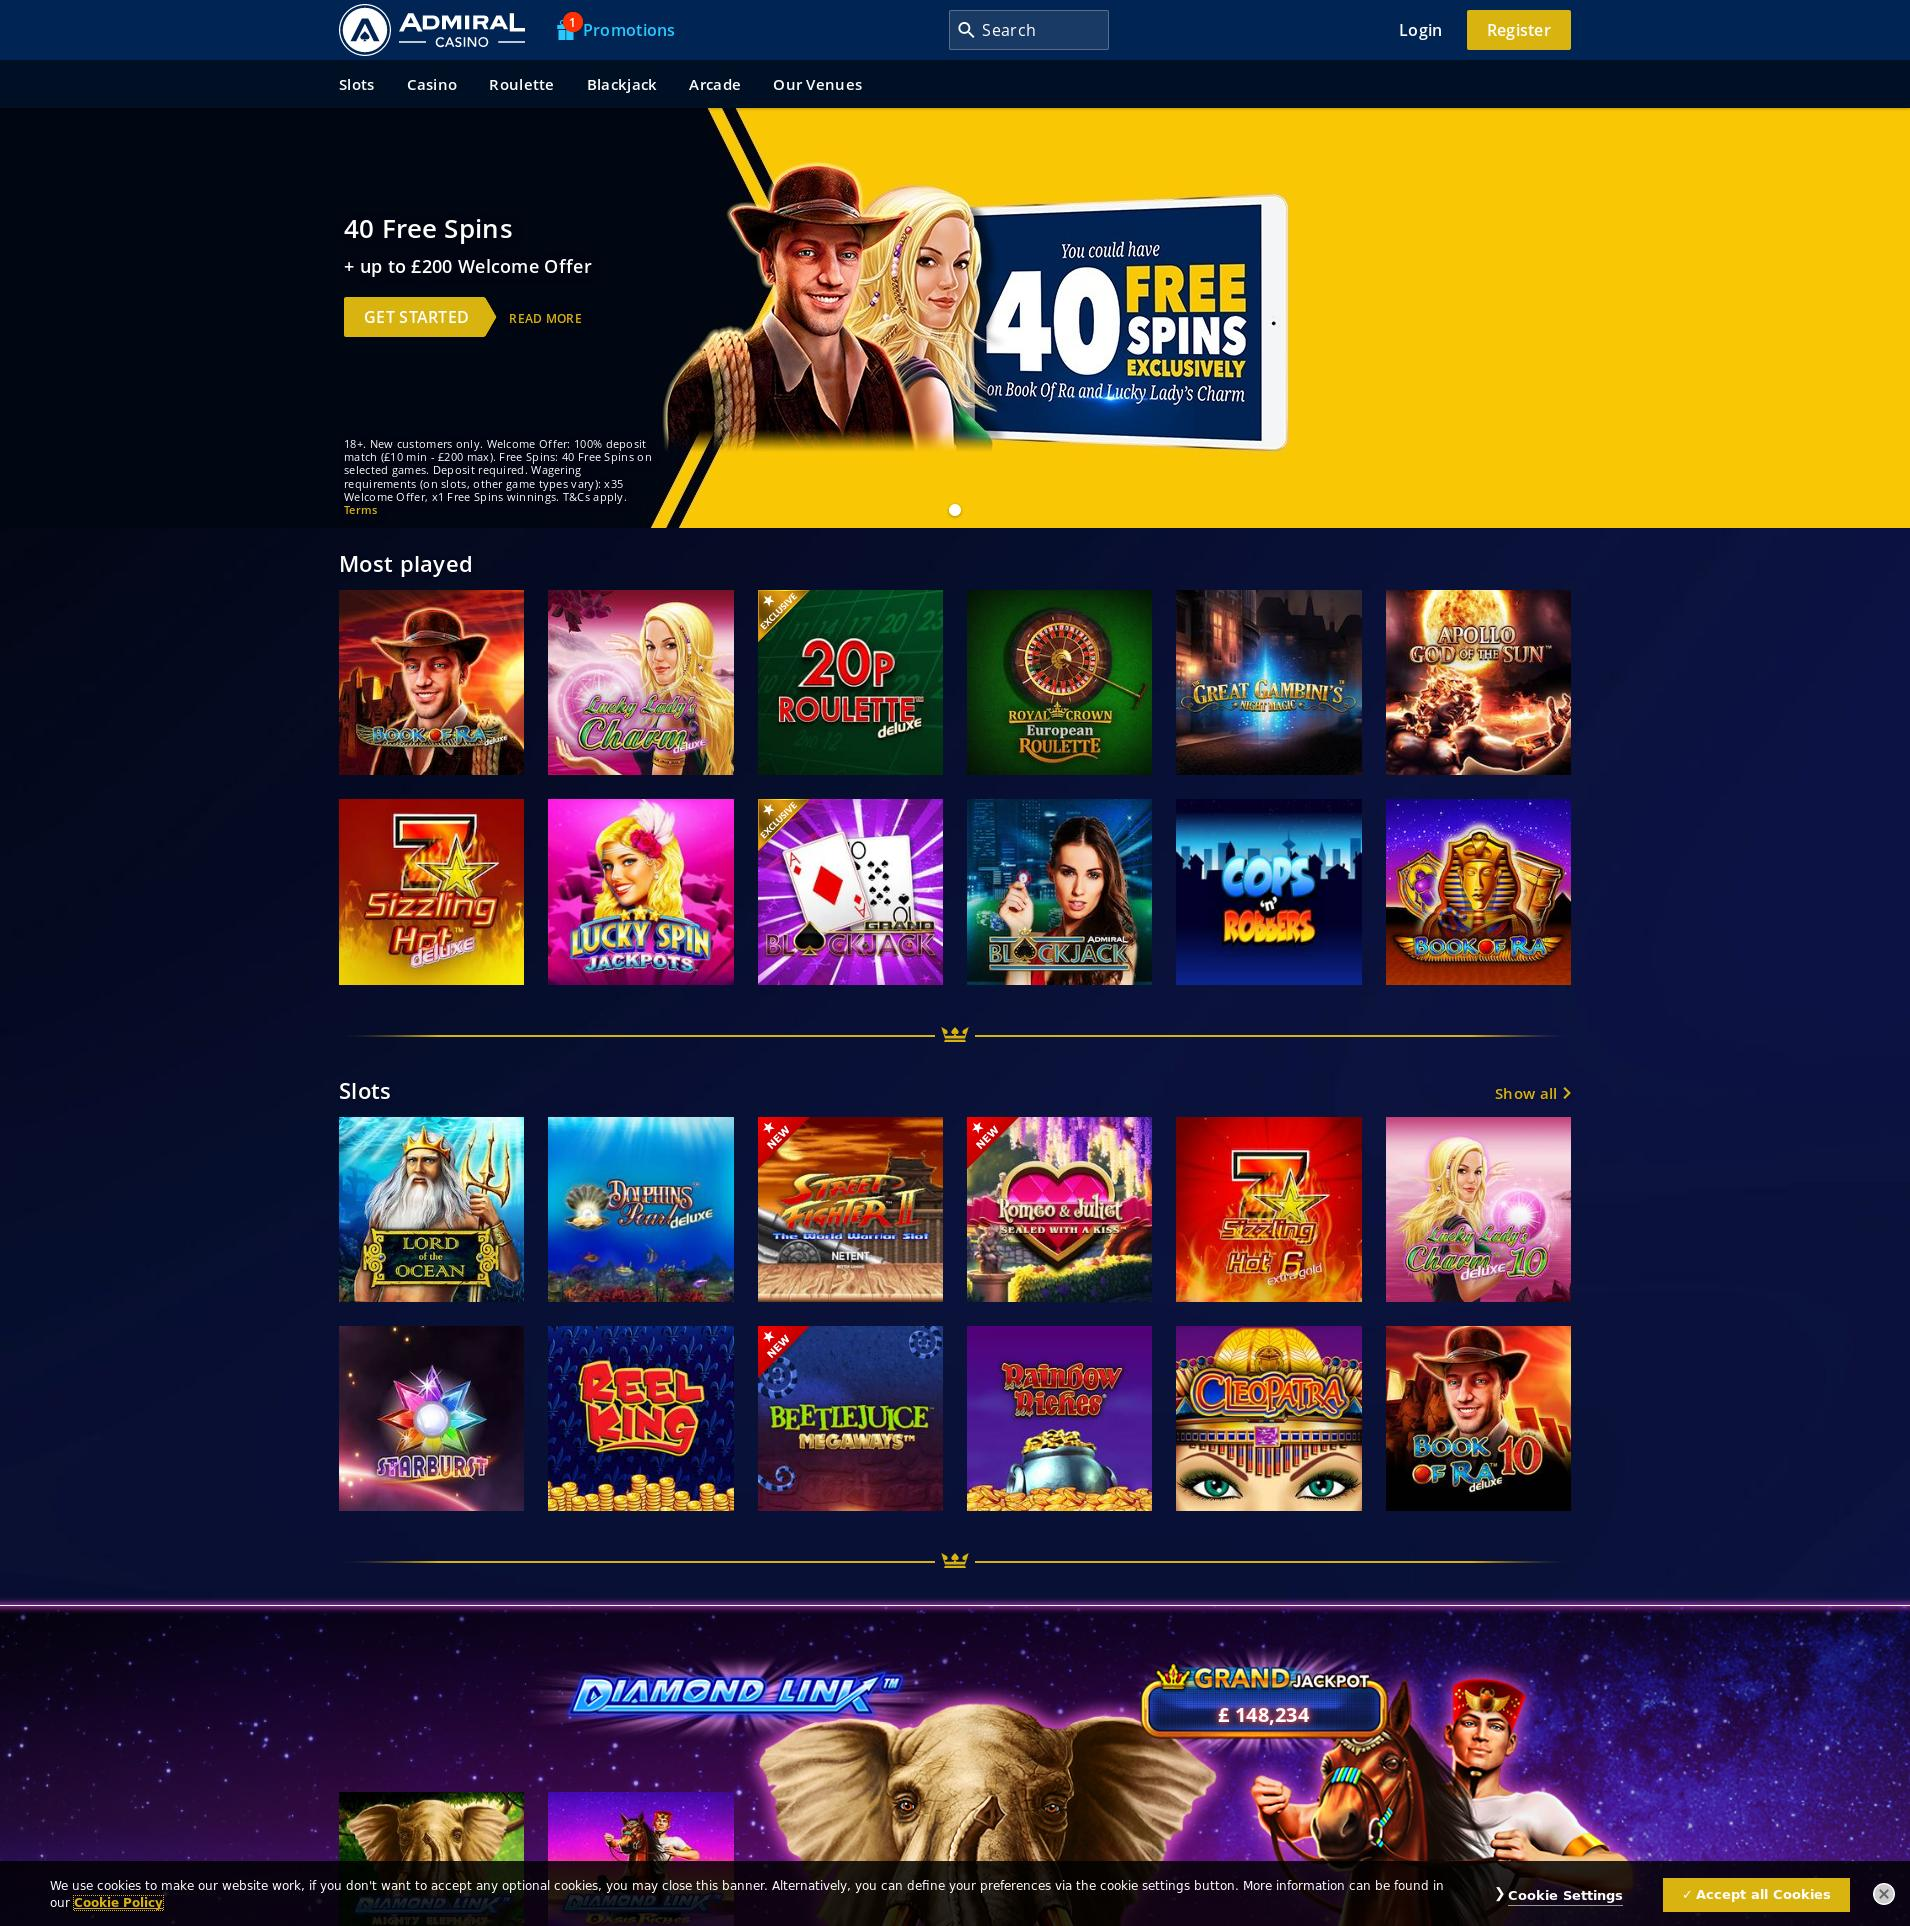 Us admiral casino games biz